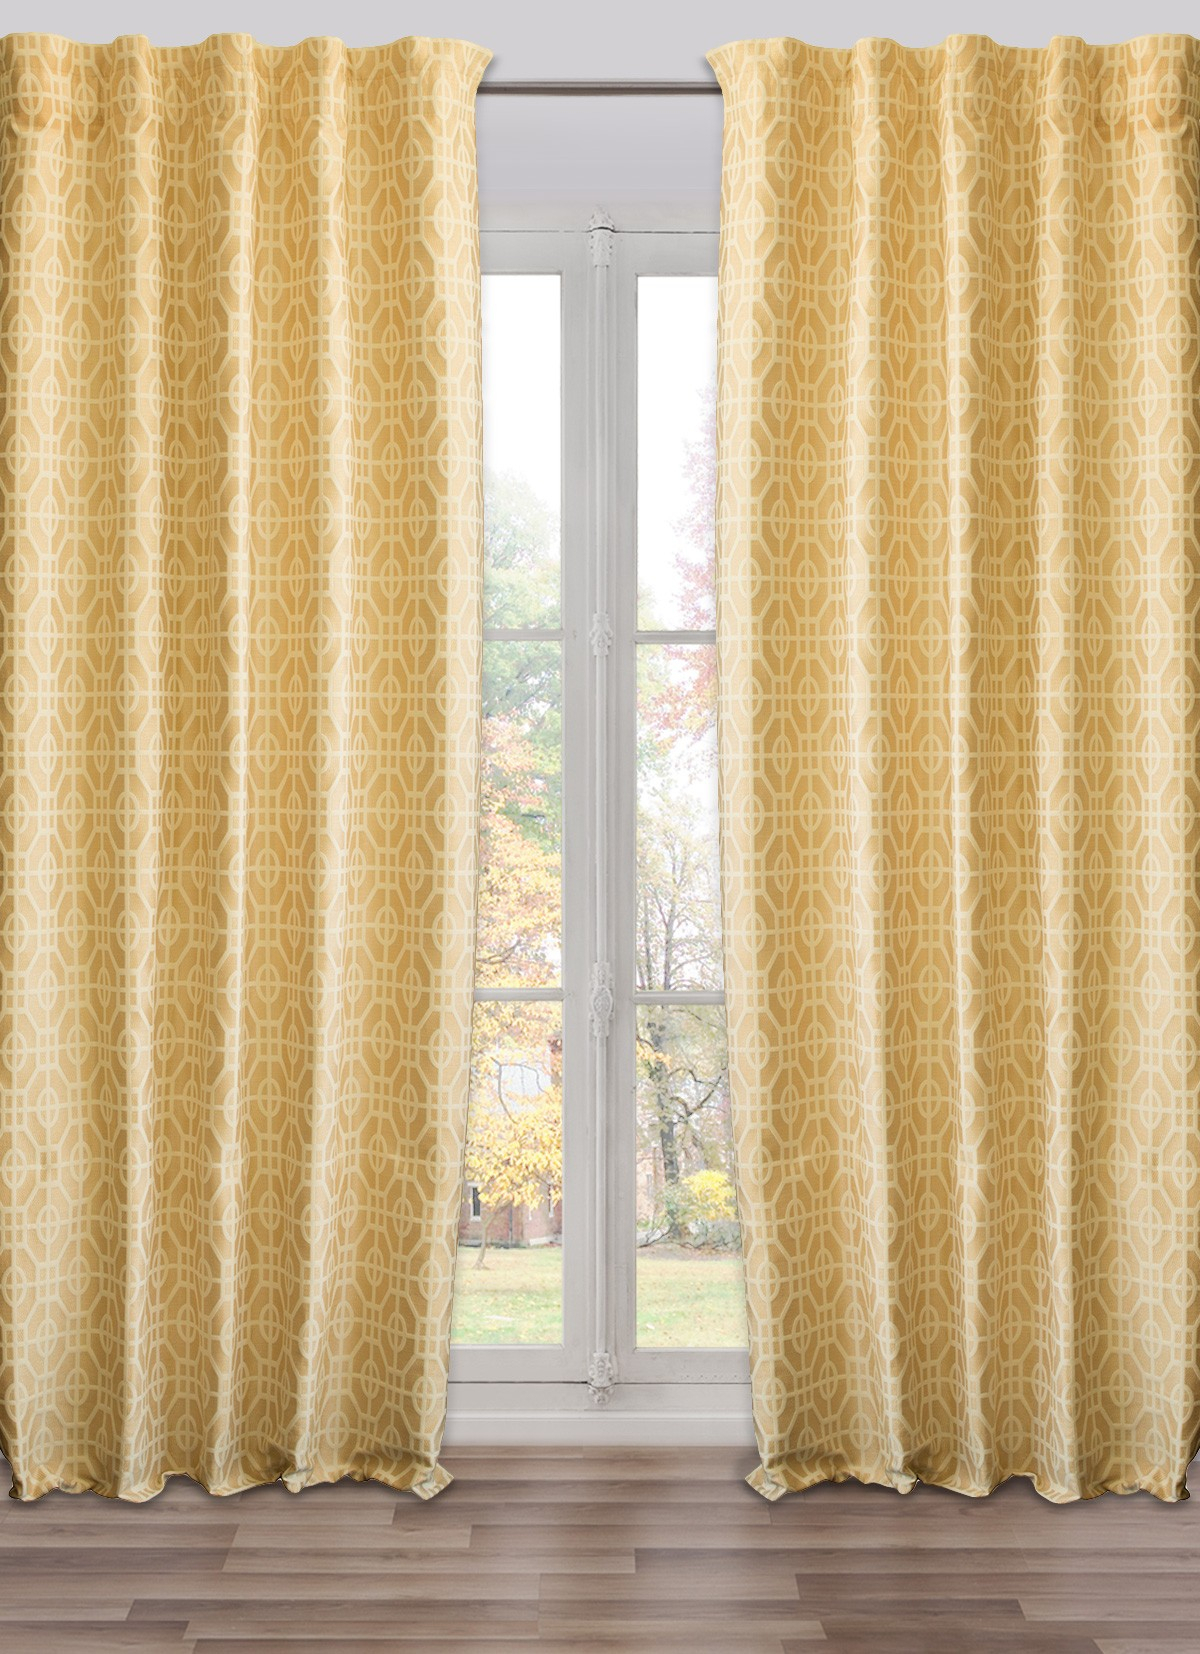 Ready Made, Fully Adjustable Drape Panel Fret Work Yellow   50 X 118 Inches In Fretwork Print Pattern Single Curtain Panels (Photo 17 of 20)